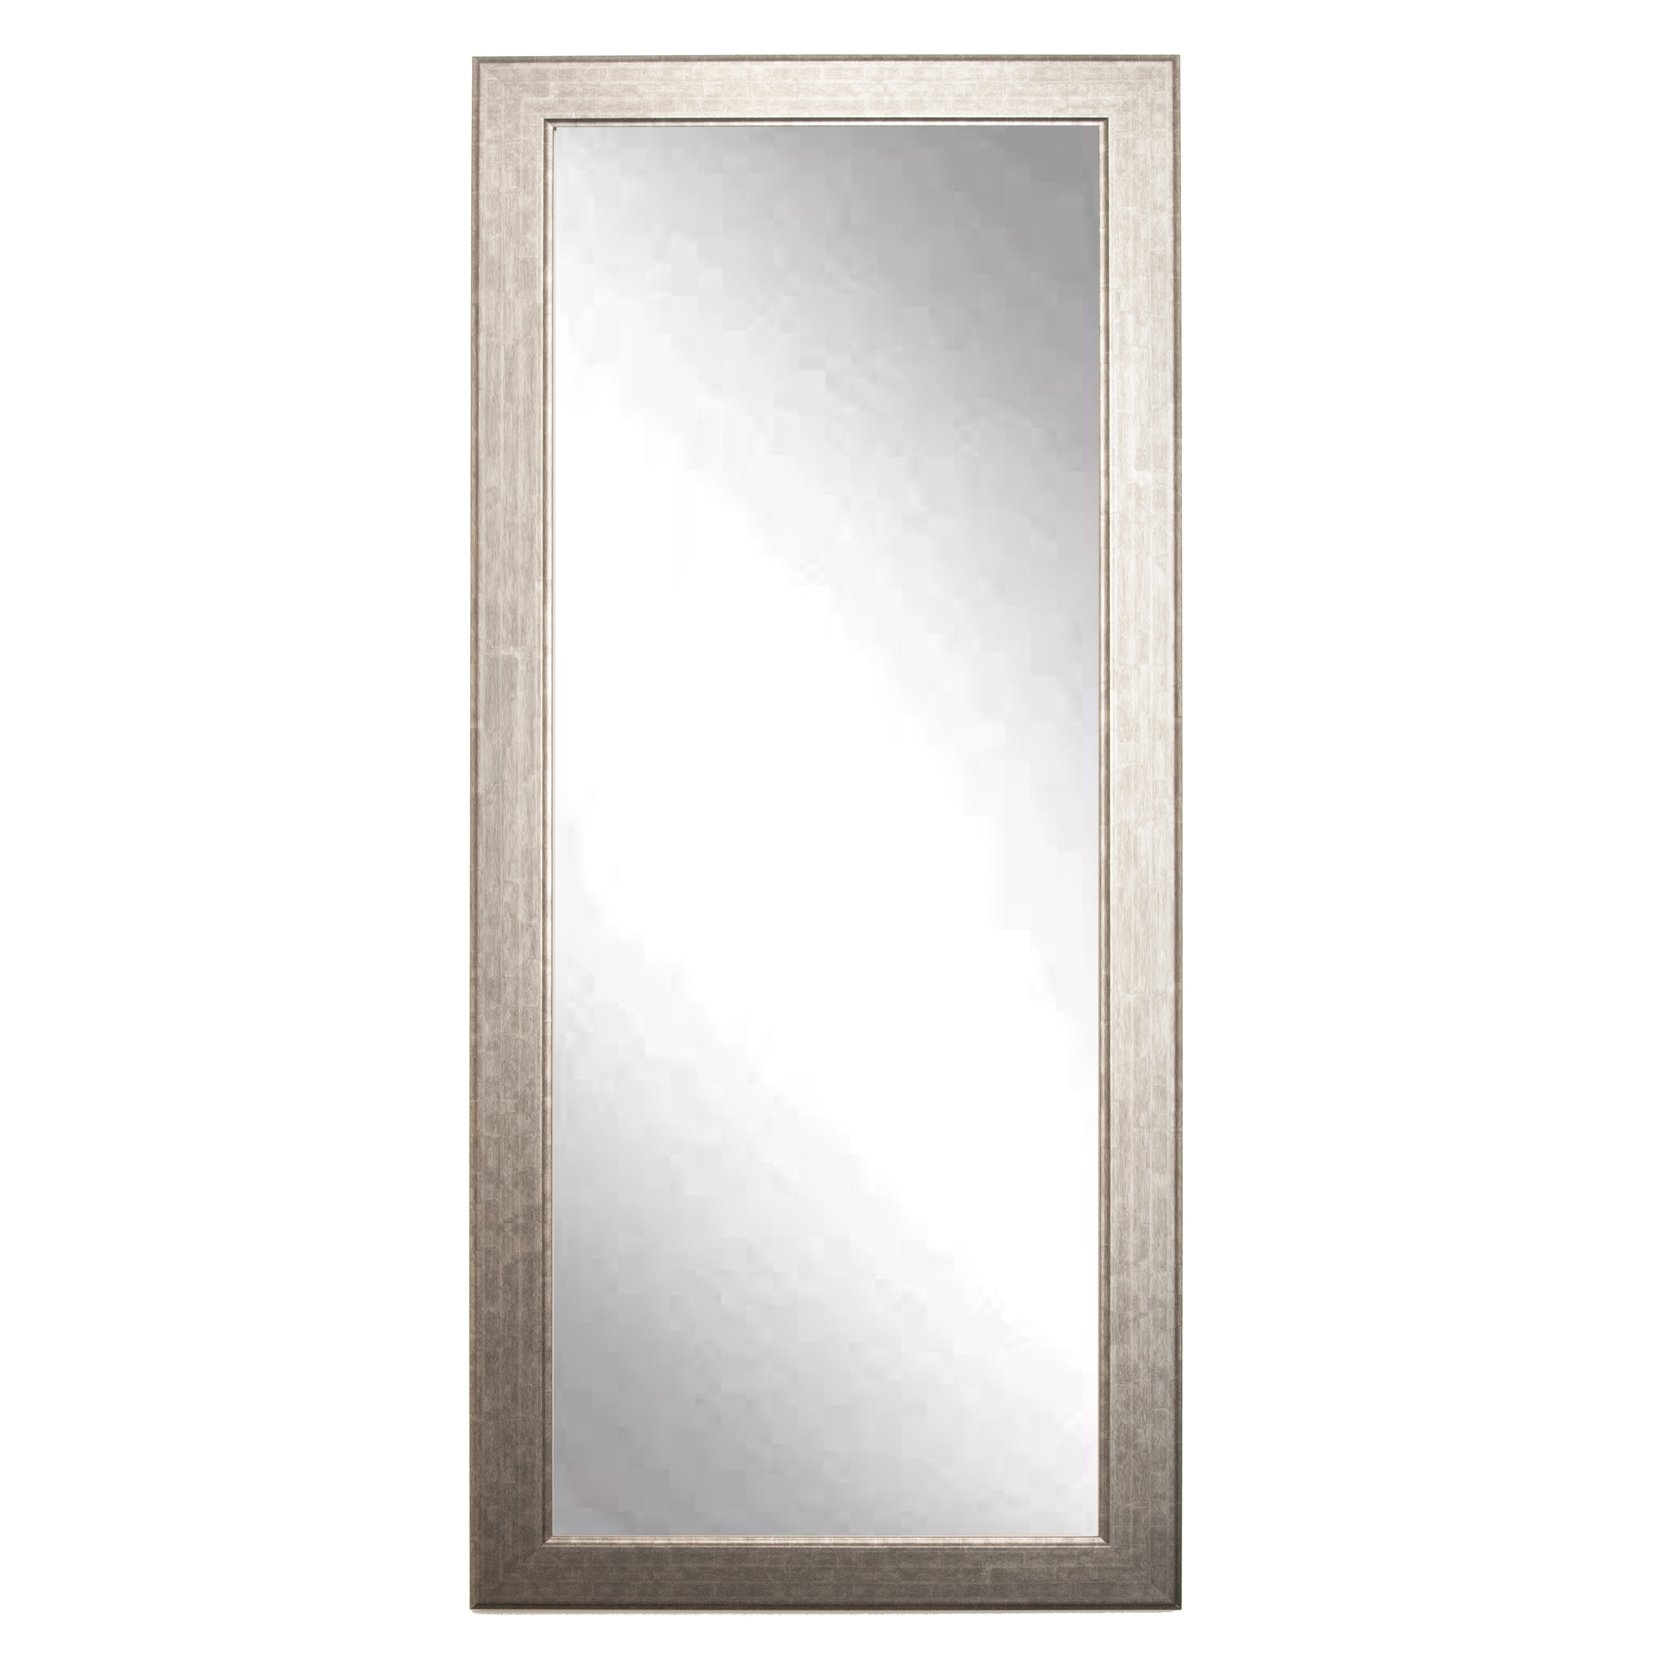 Brandtworksllc Subway Silver Elite Tall Accent Wall Mirror With Tall Silver Mirror (View 2 of 15)